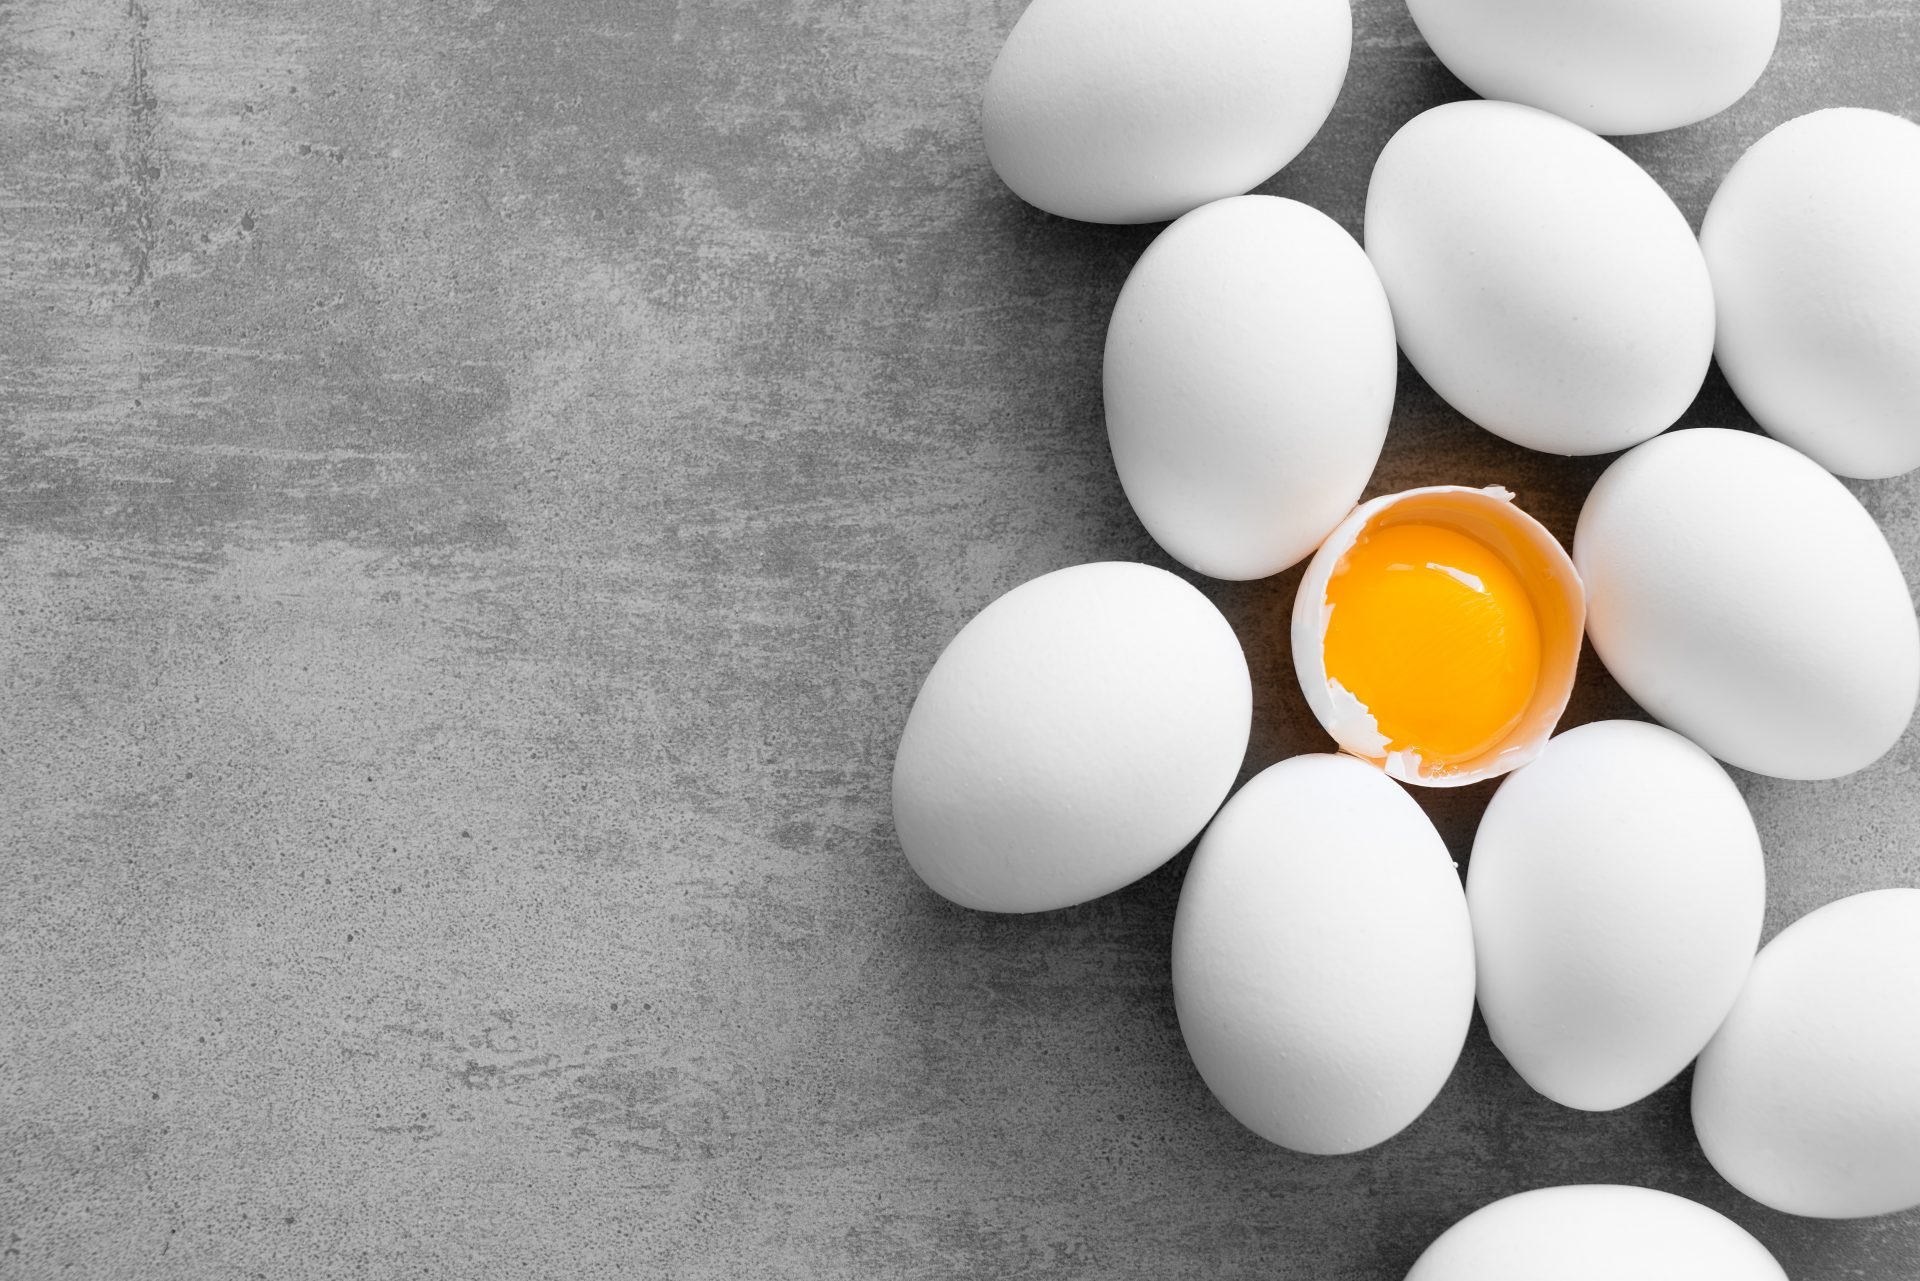 3 Tips to Improve Egg Quality for Pregnancy or IVF